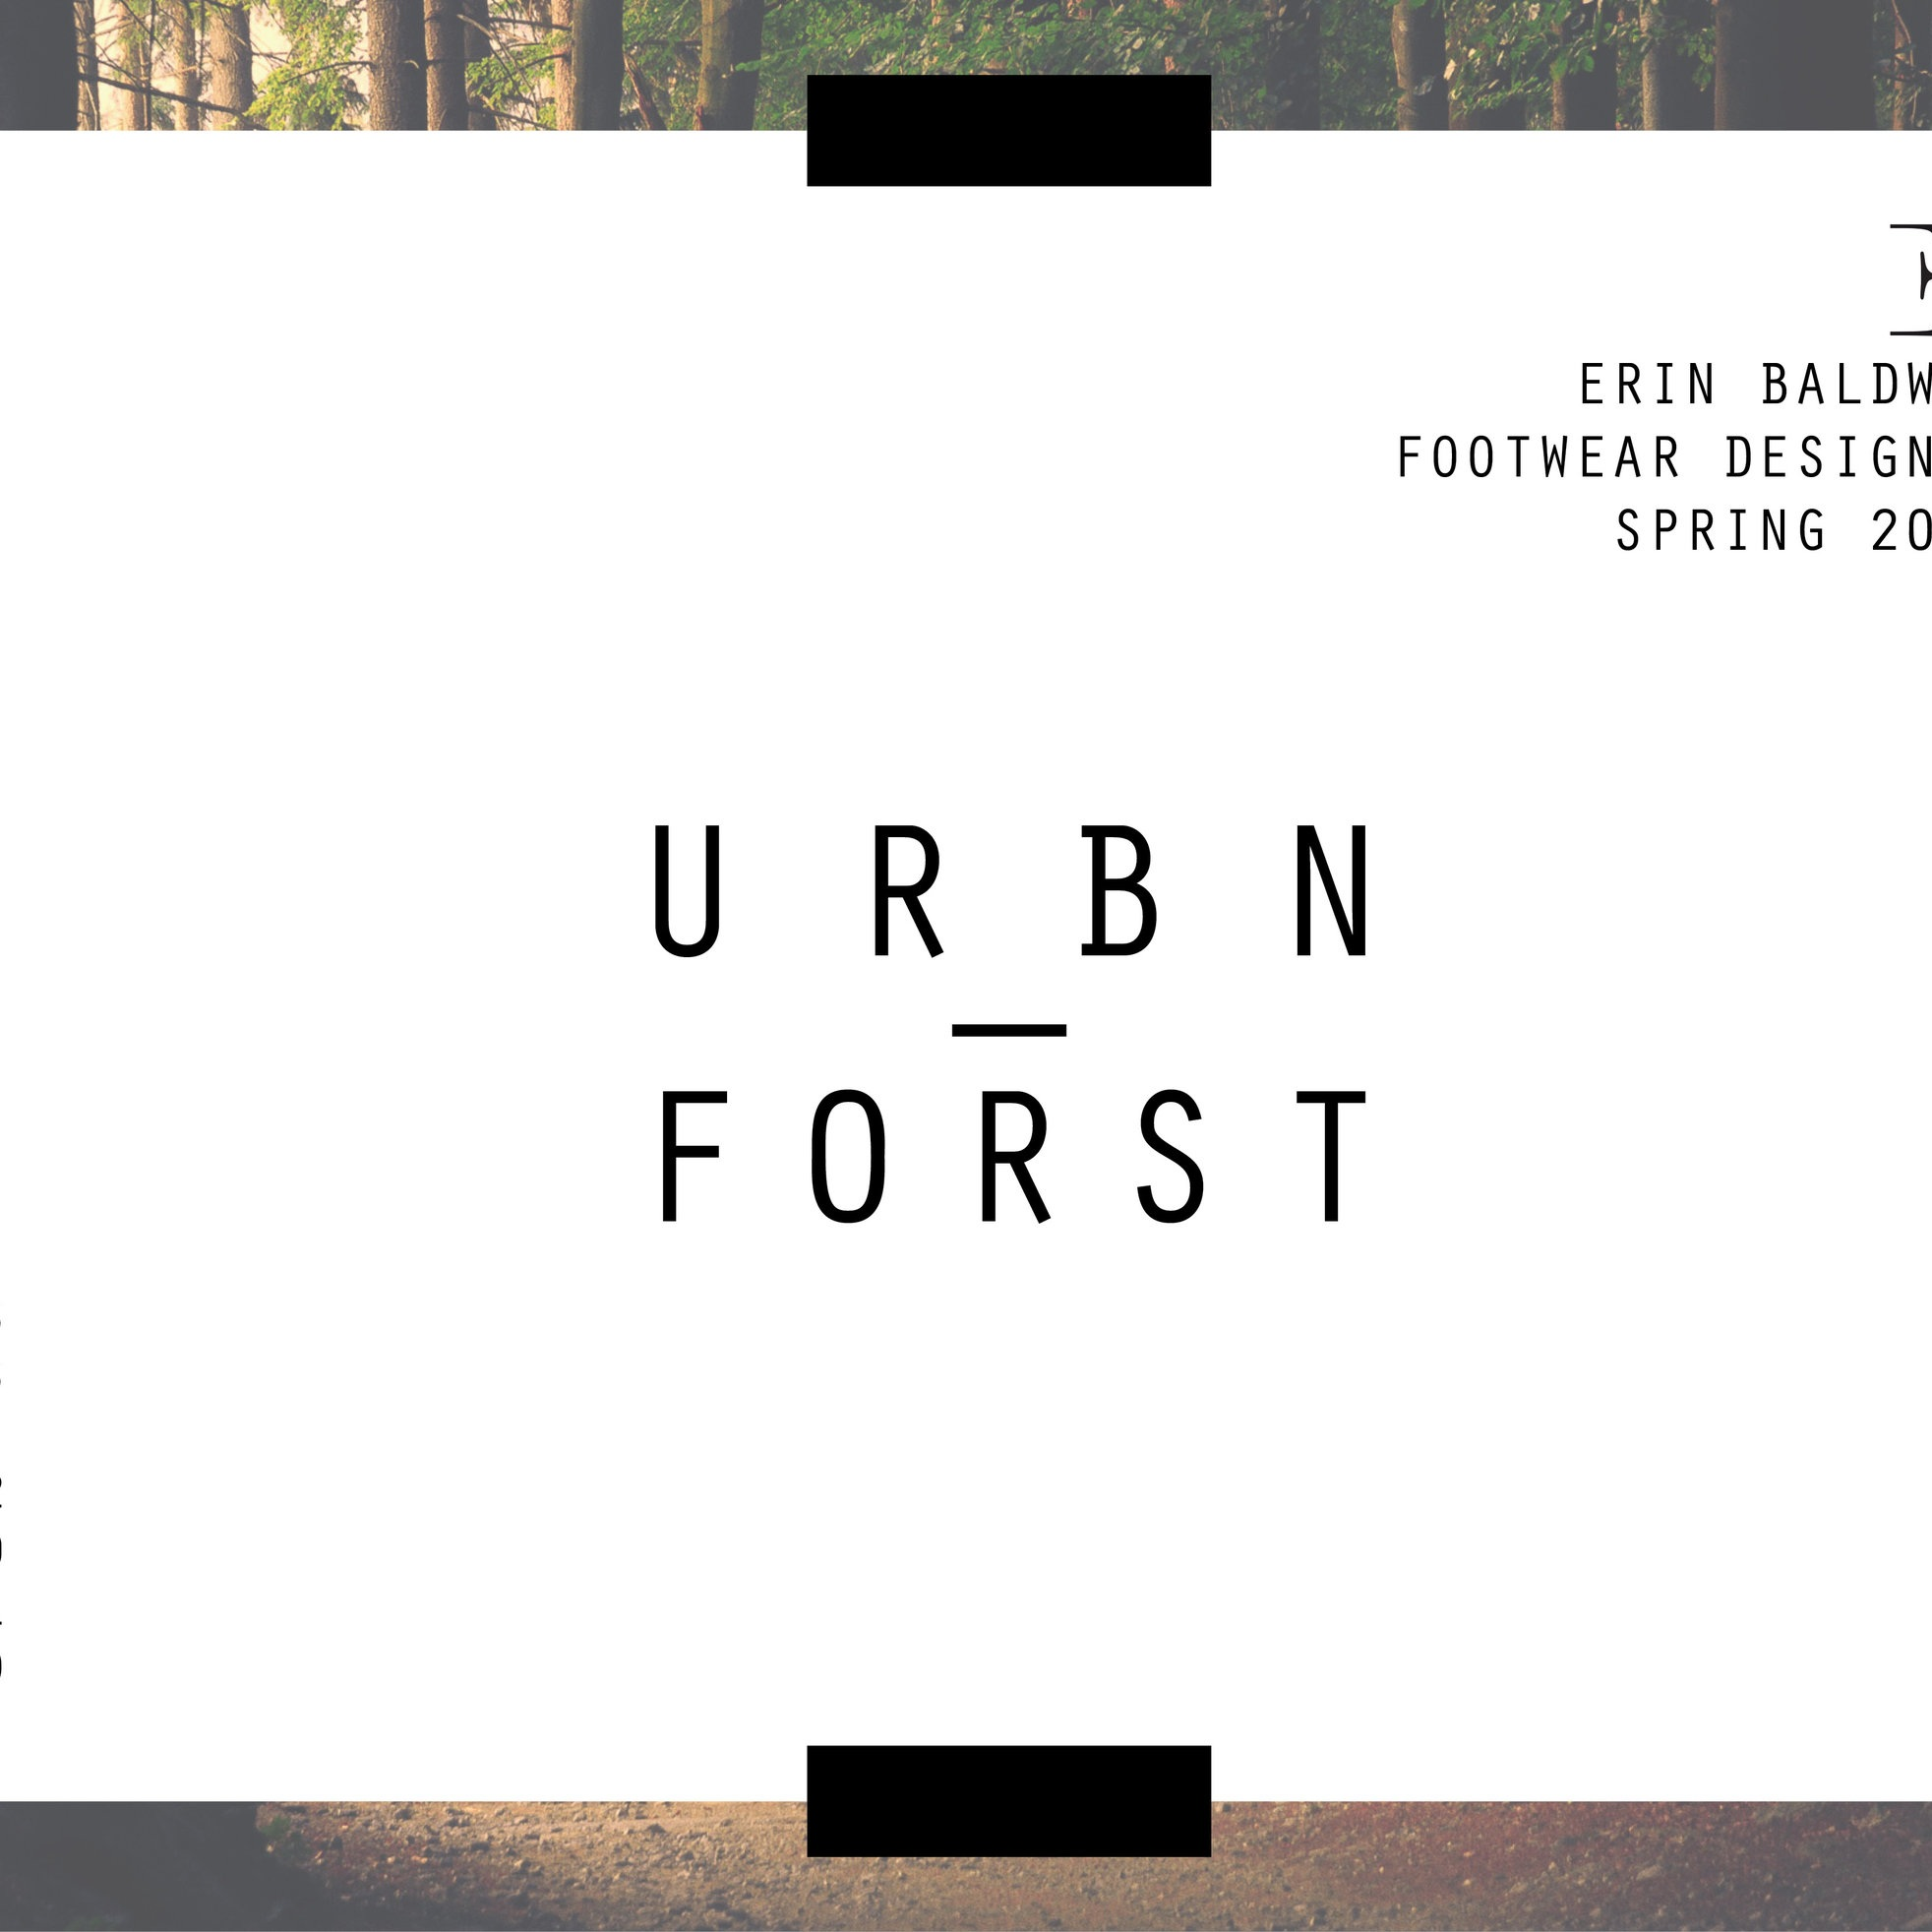 URBN FORST - Active Footwear Collection